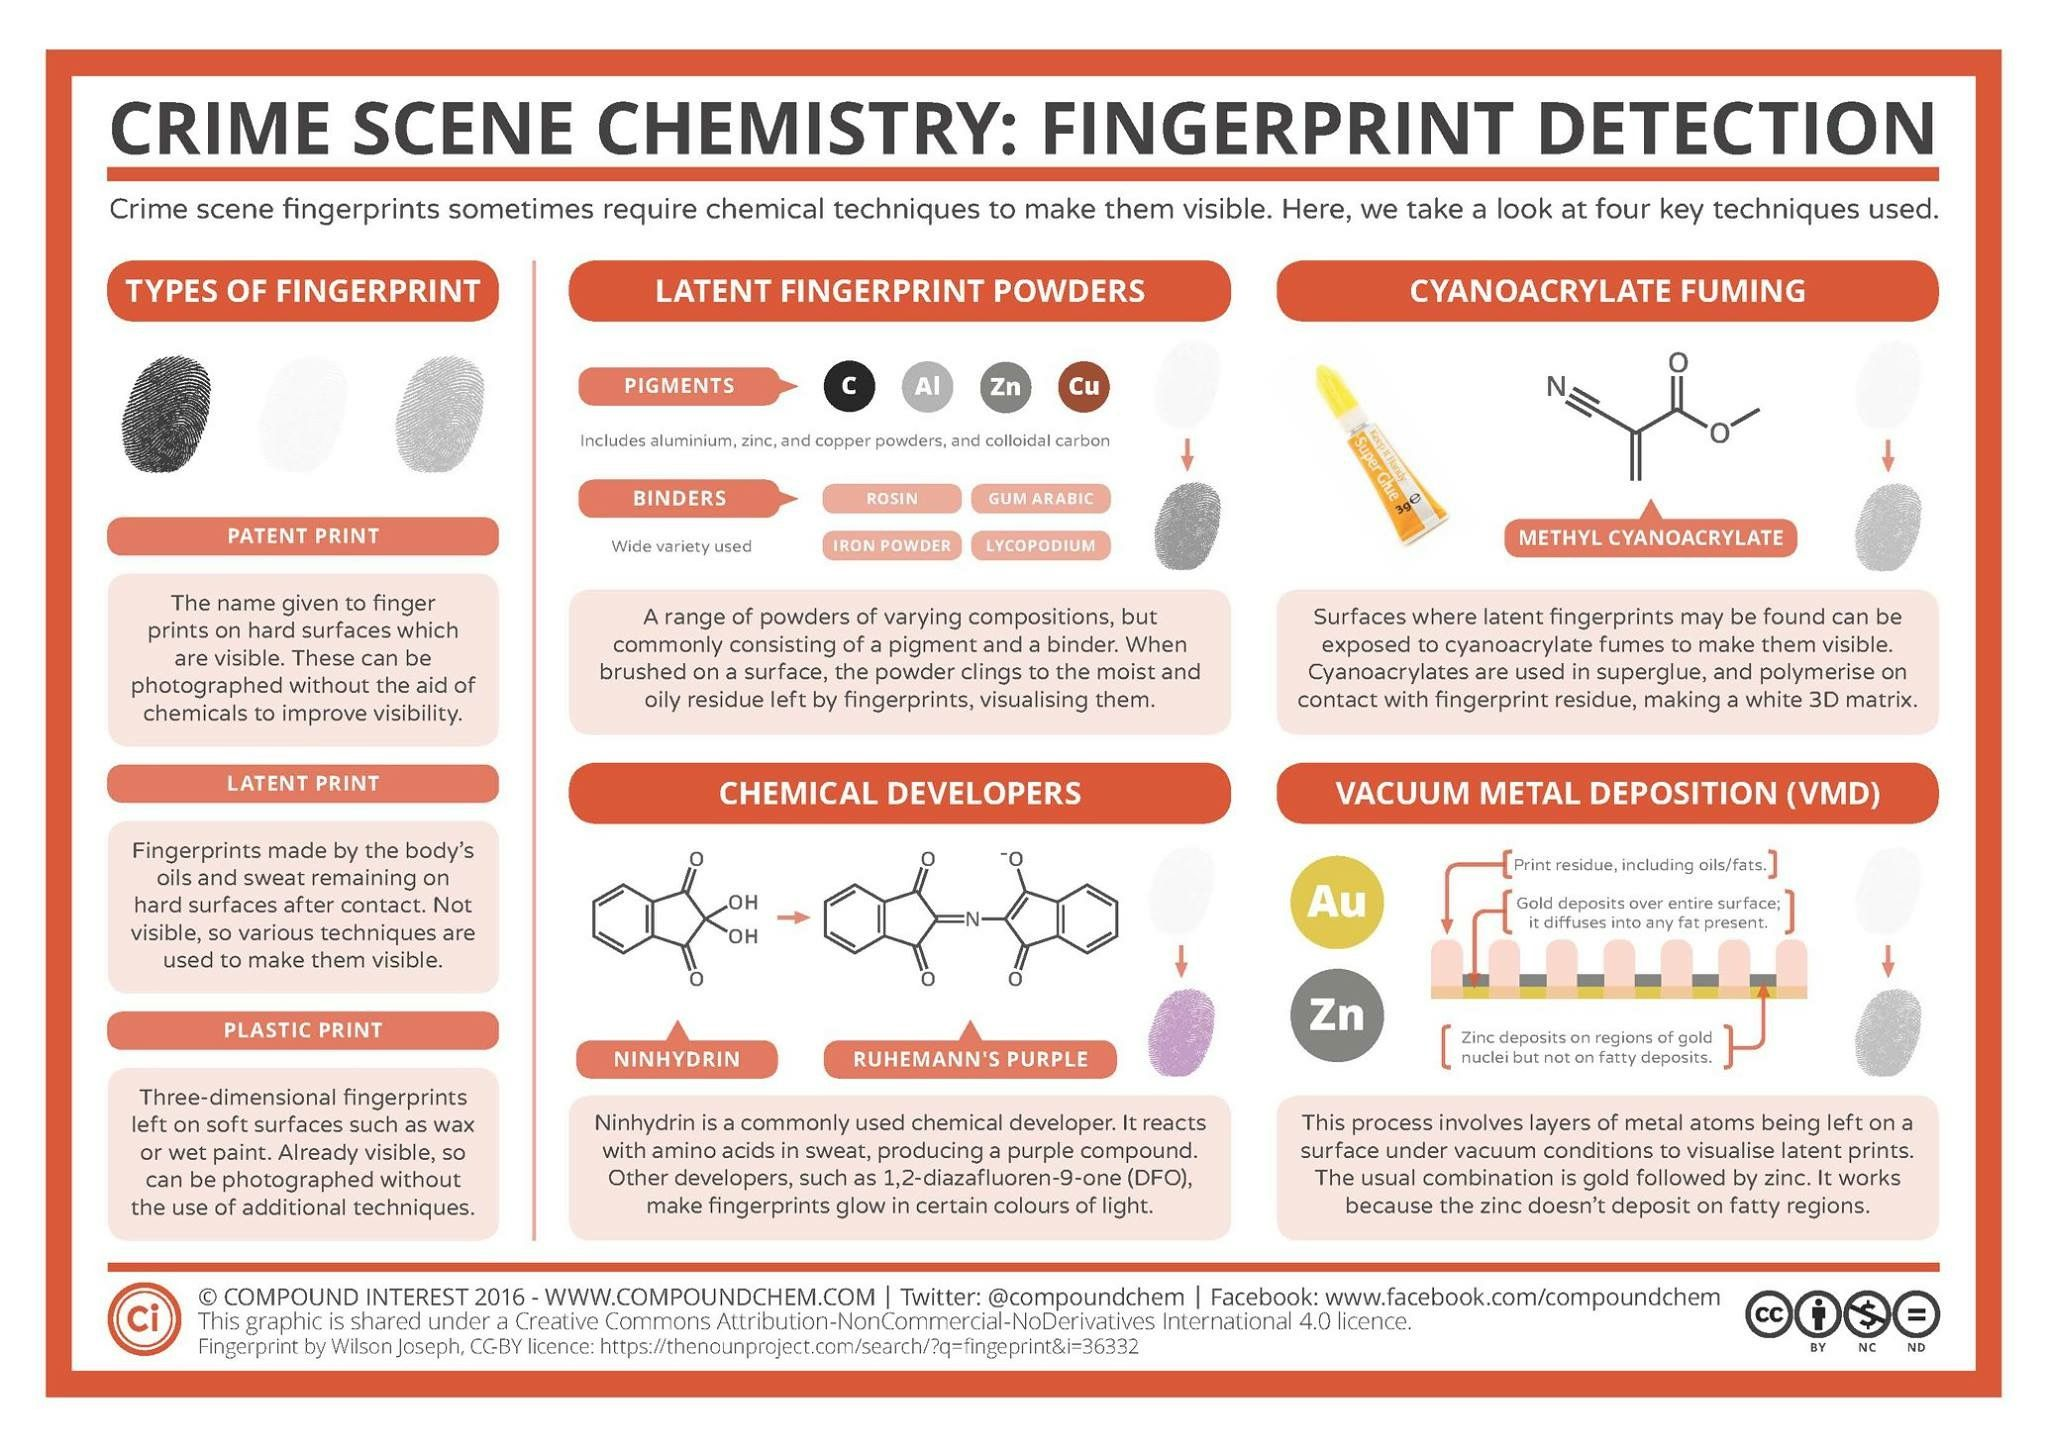 pin by clara carbajal on chemistry chemistry however they re not always visible and investigators will often rely on chemical techniques in or